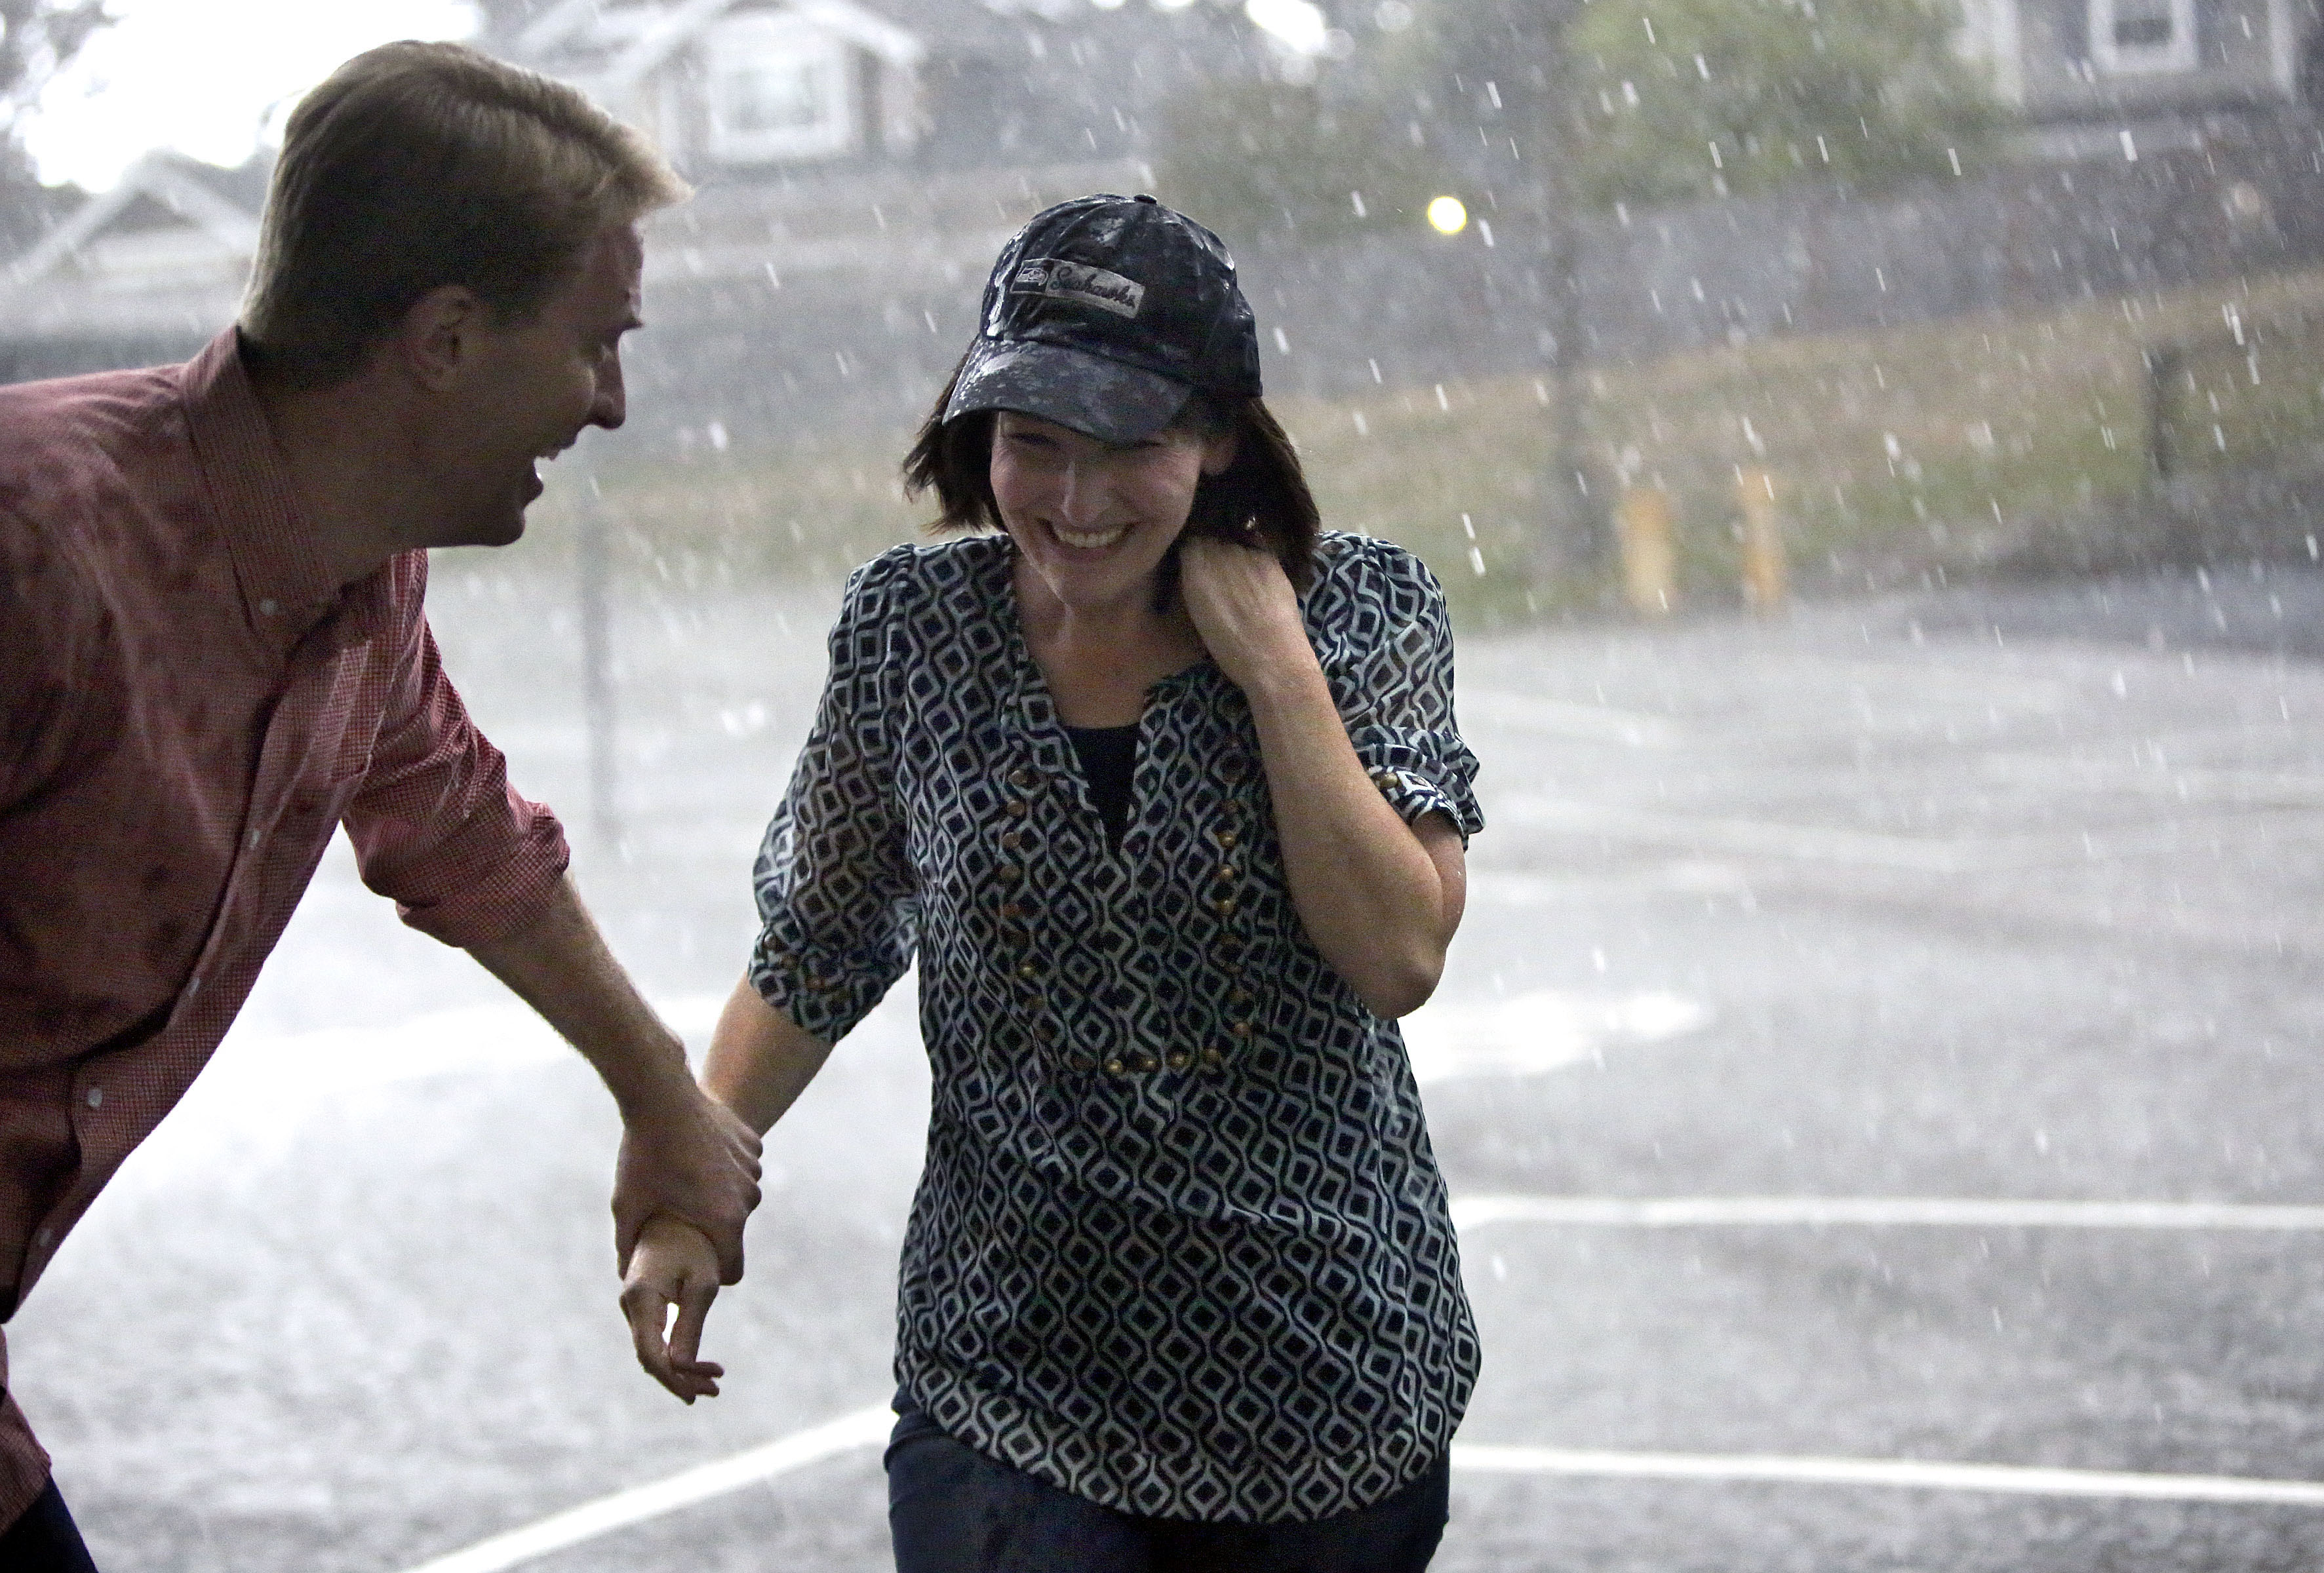 Justin Allen pulls his wife Alexis Allen out of the rain near their home in Renton, Wash., on Friday, Sept. 14, 2018.